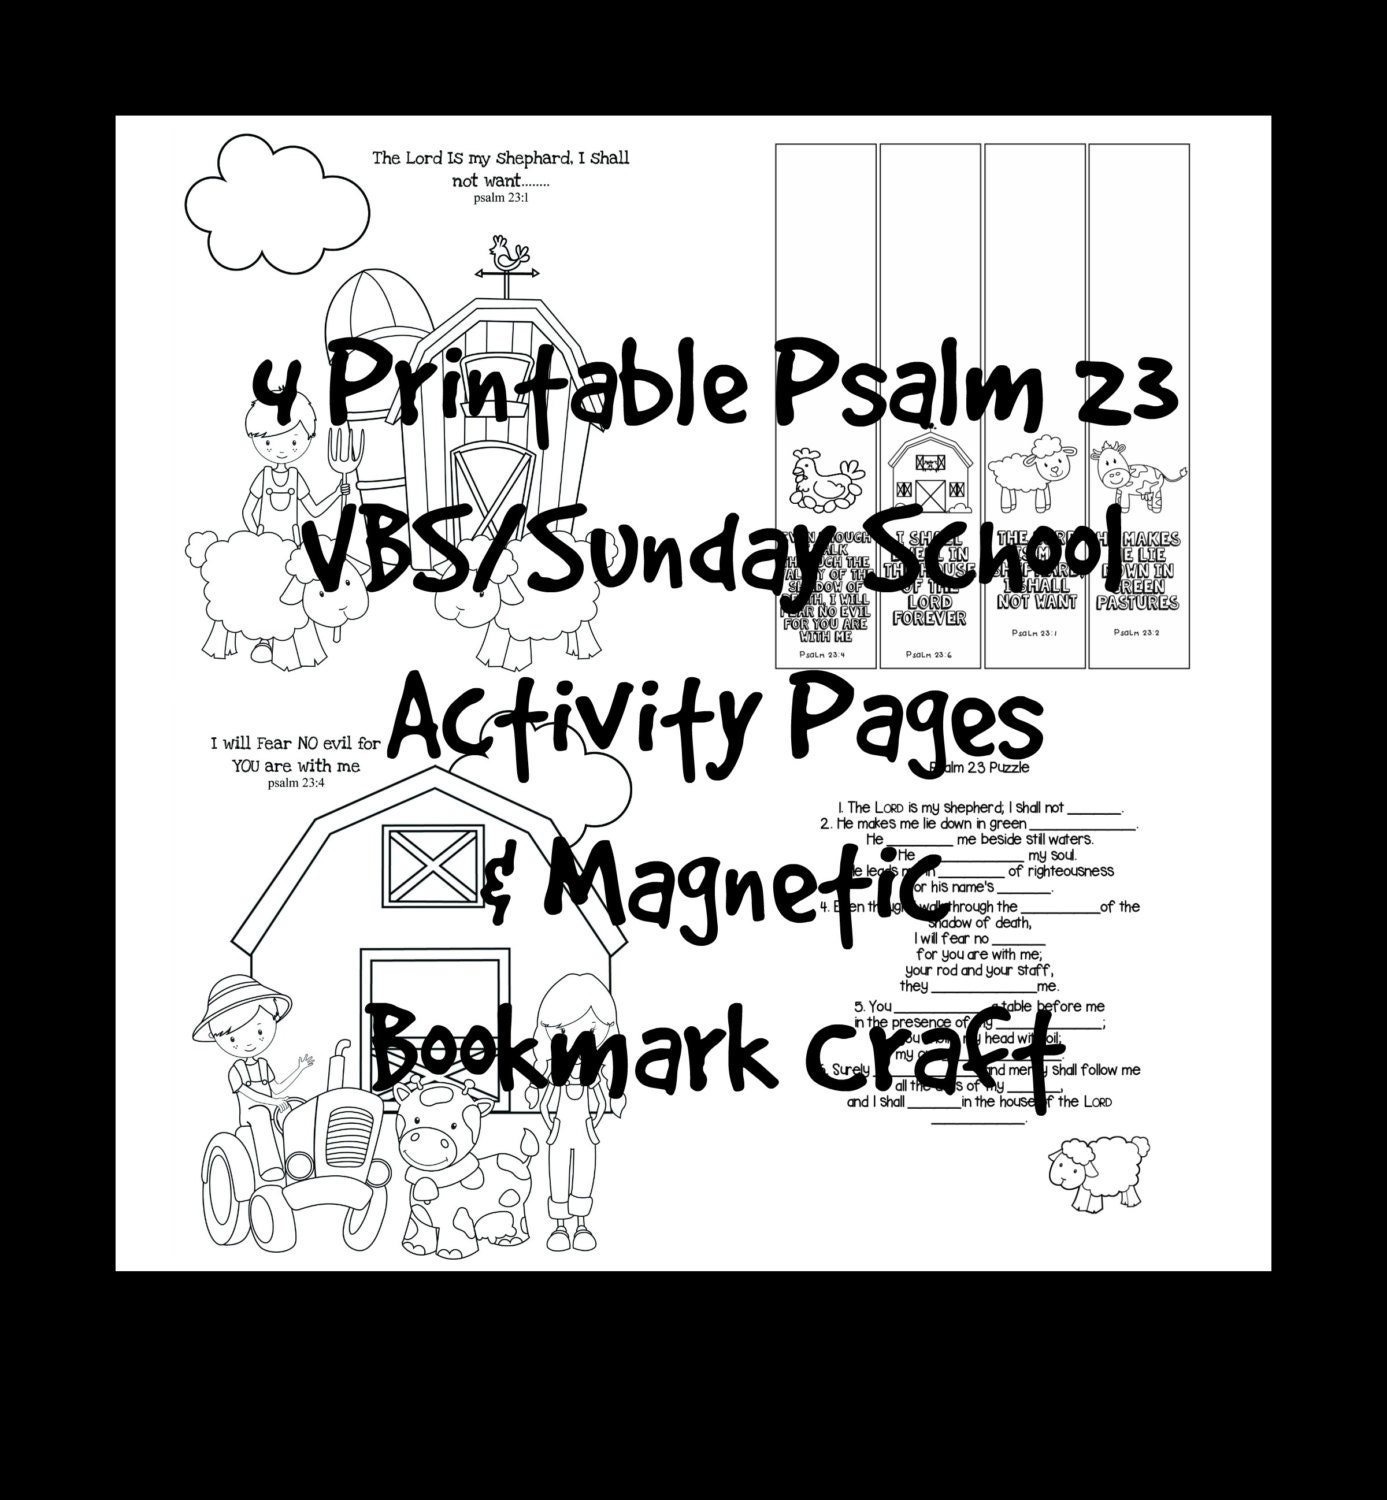 VBS Sunday School Scripture Activity